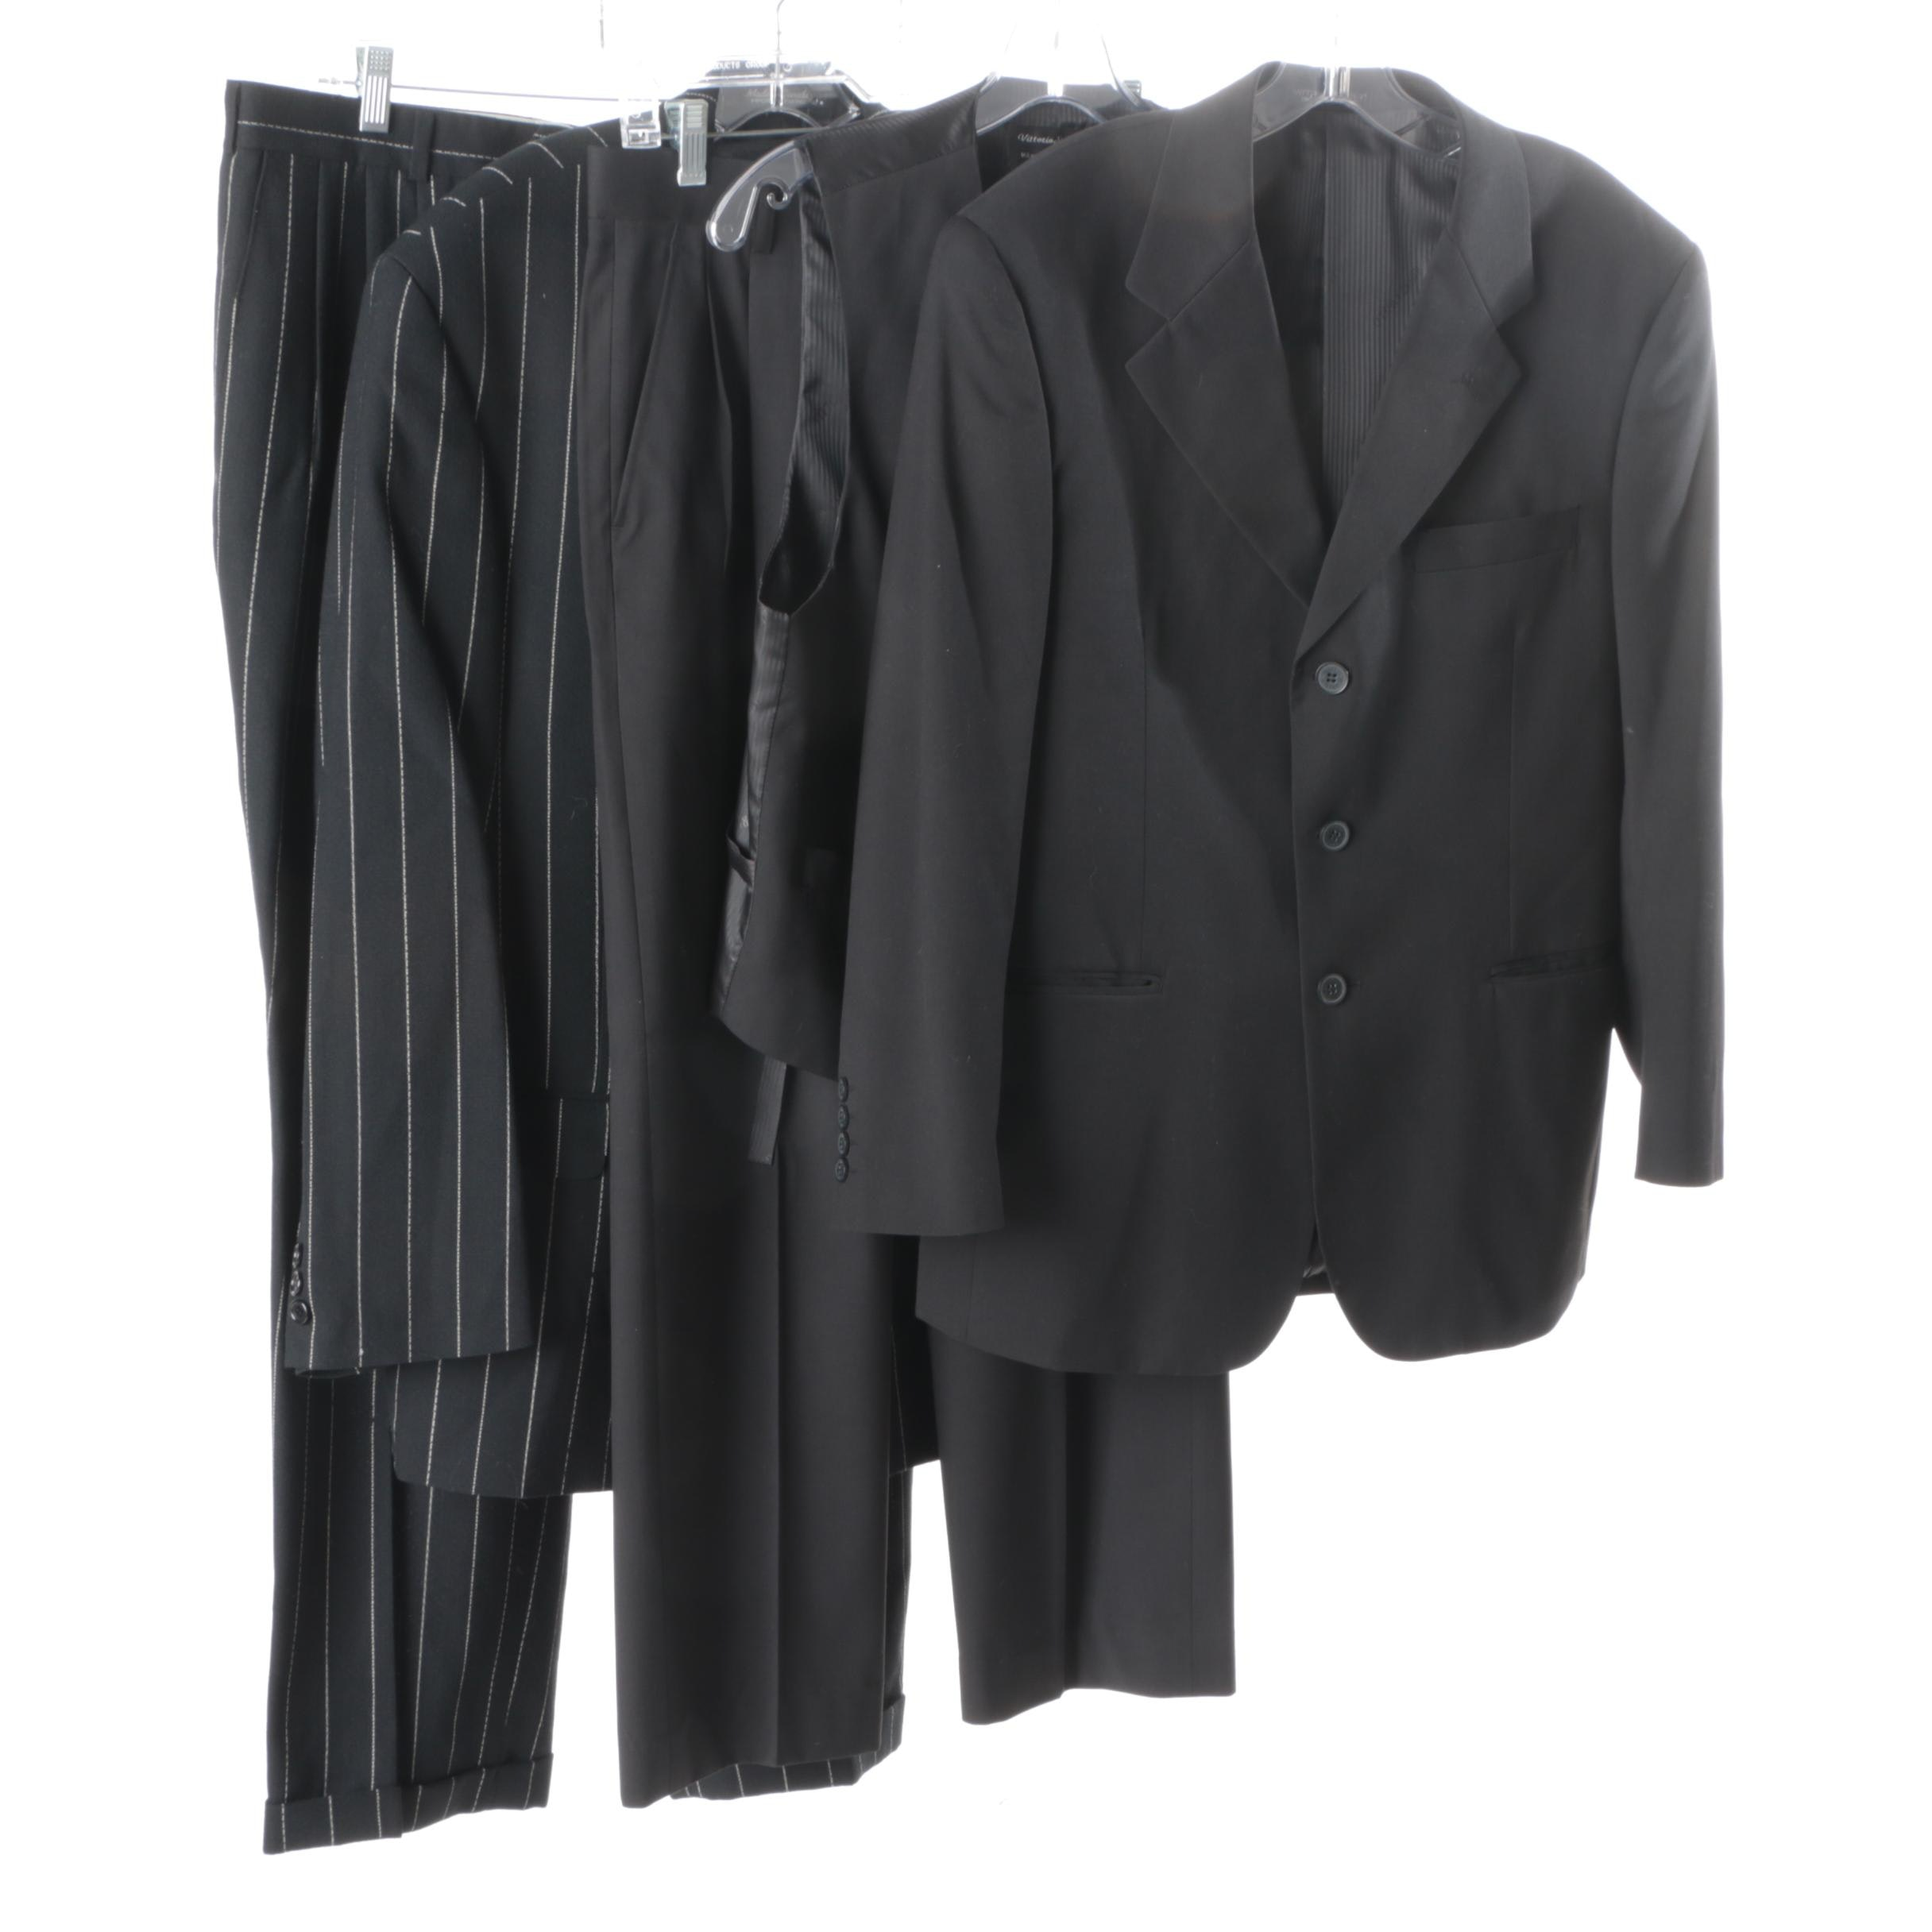 Men's Suits Including Vittorio St. Angelo